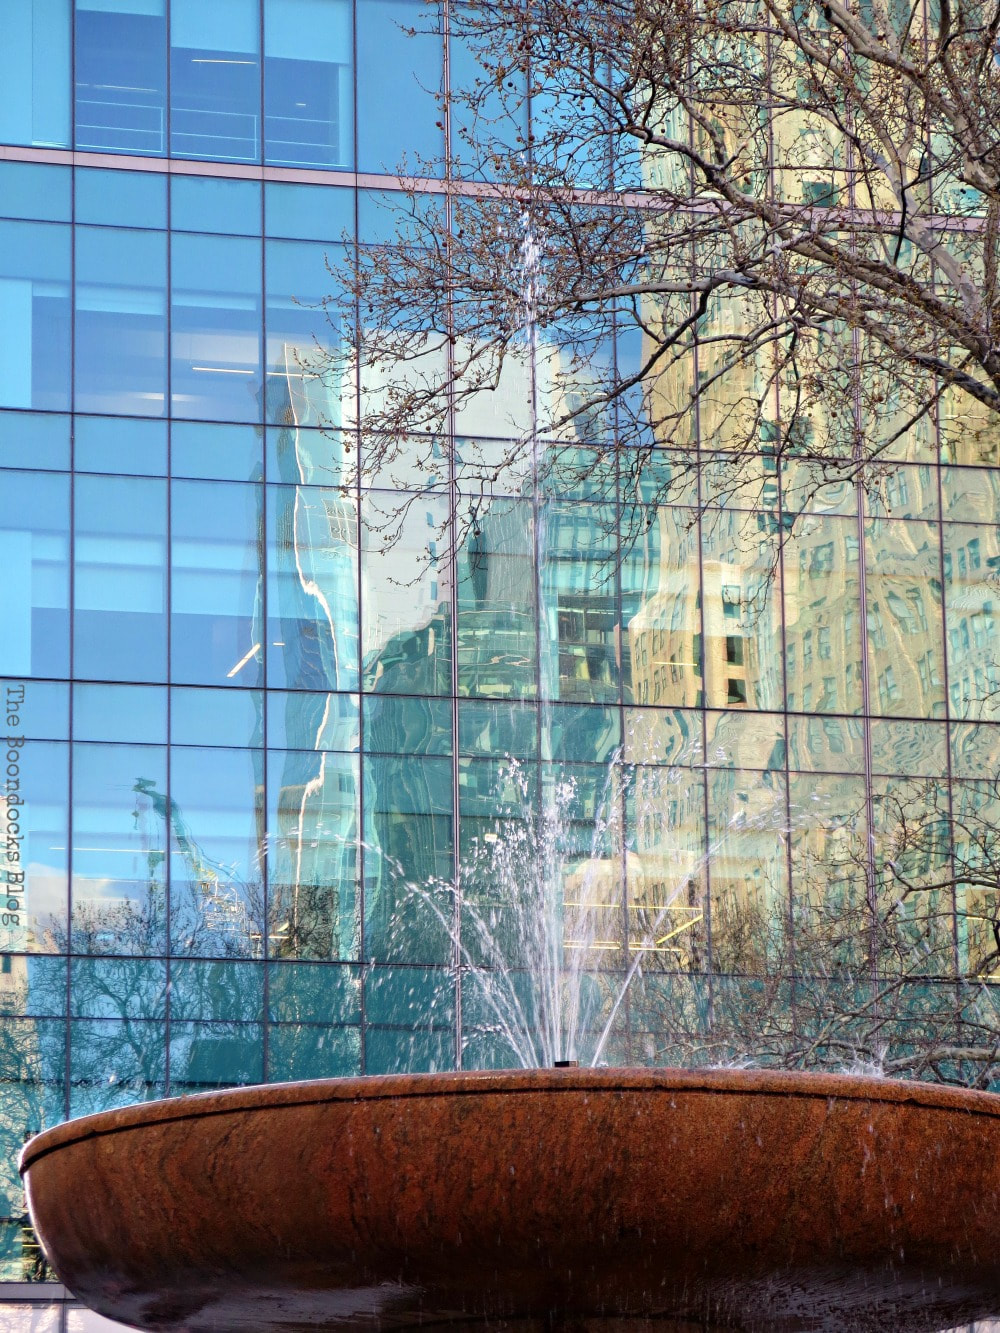 Reflections on Glass facade of skyscraper and the water fountain at the forefront, Bryant Park New York, A Visit to the Restored Bryant Park and its Surrounding Areas www.theboondocksblog.com